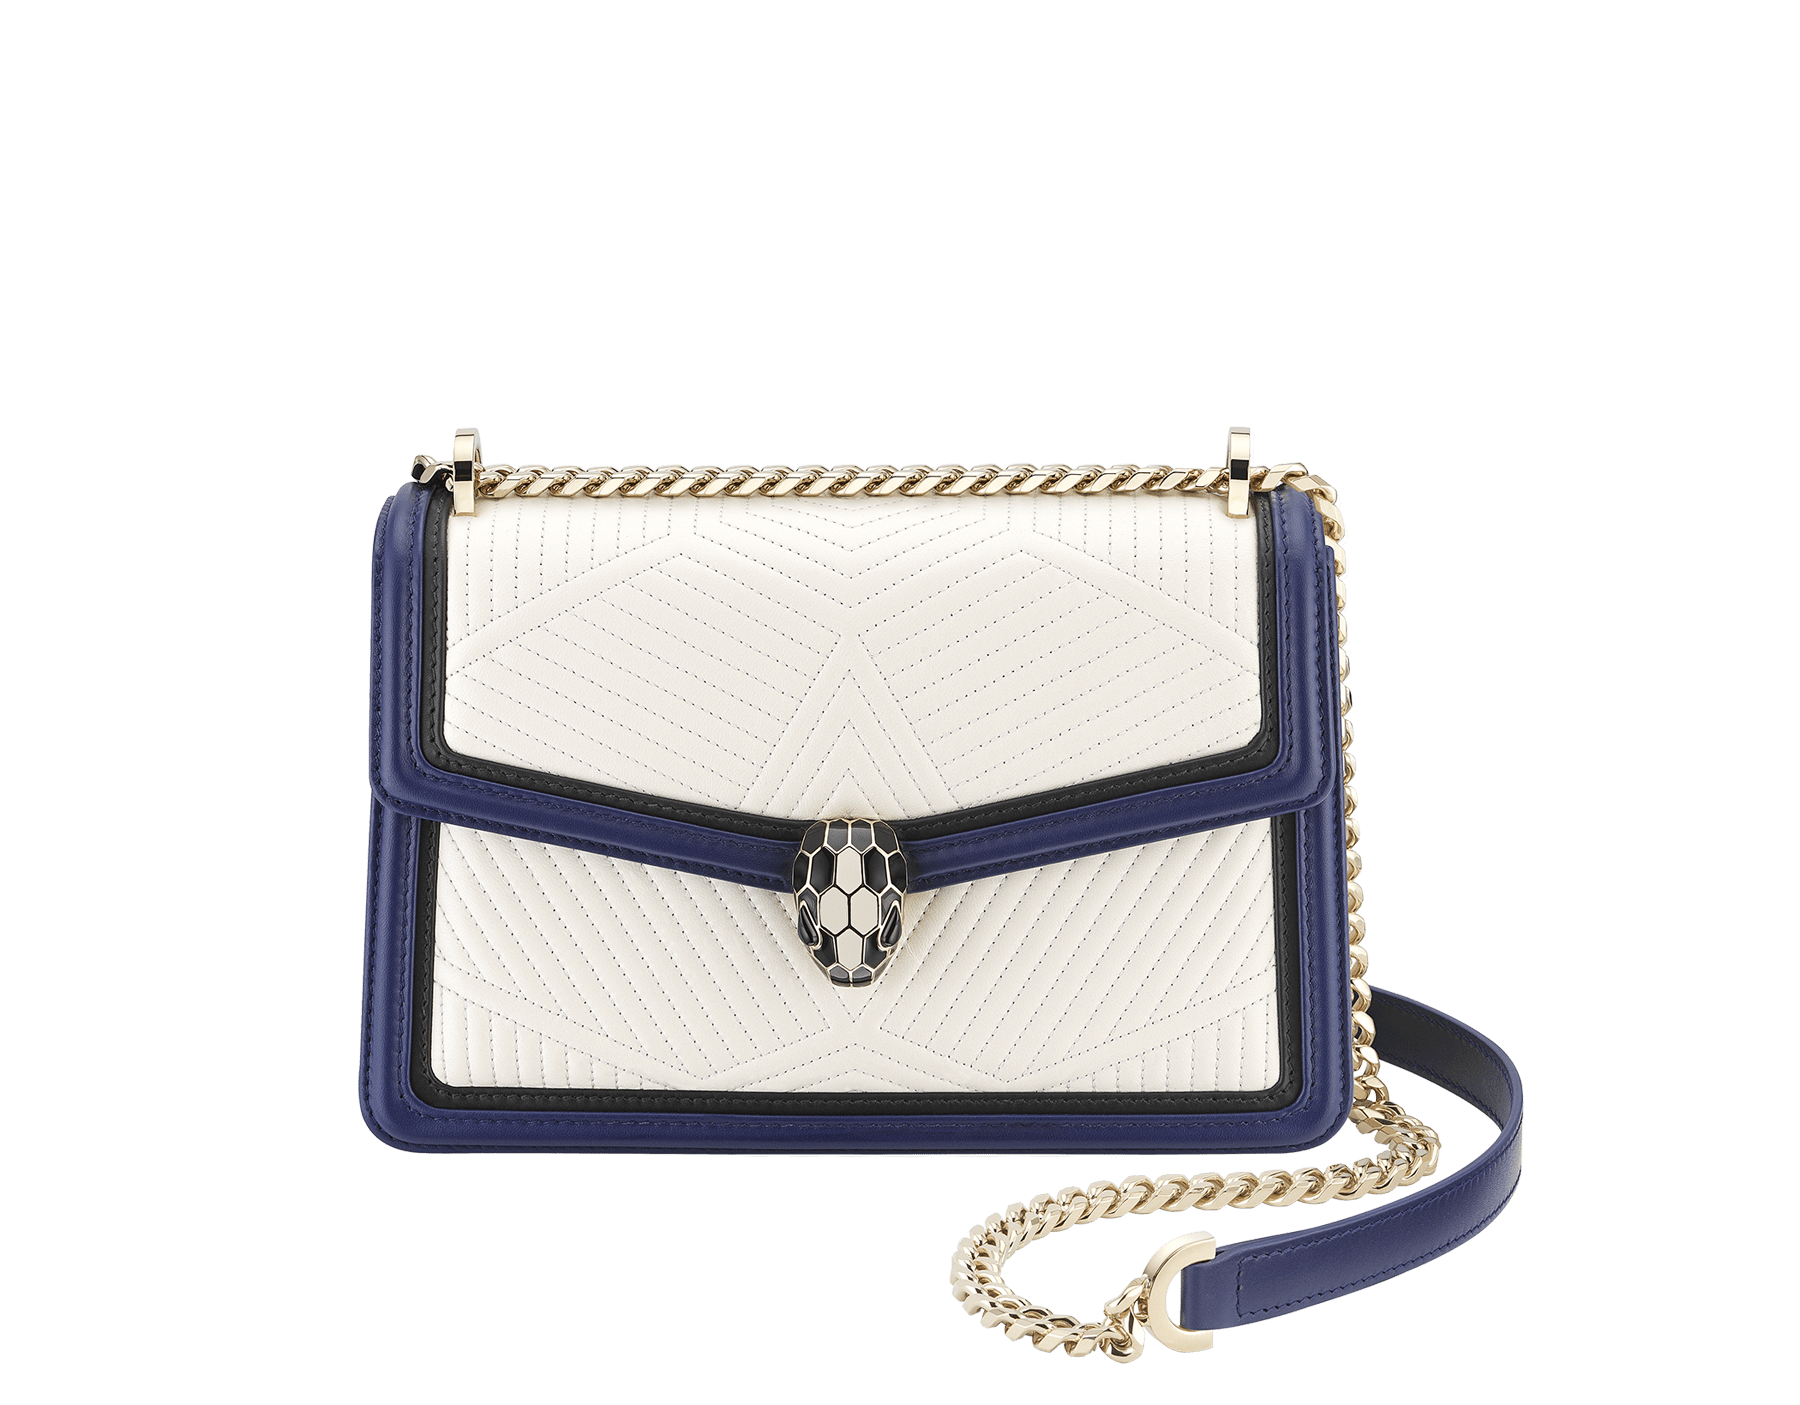 """Serpenti Diamond Blast"" shoulder bag in quilted, agate-white nappa leather with Royal Sapphire blue and black calfskin edging and Royal Sapphire blue nappa leather inner lining. Iconic snakehead closure in light gold-plated brass embellished with black and agate-white enamel and black onyx eyes. 922-FQDb image 1"